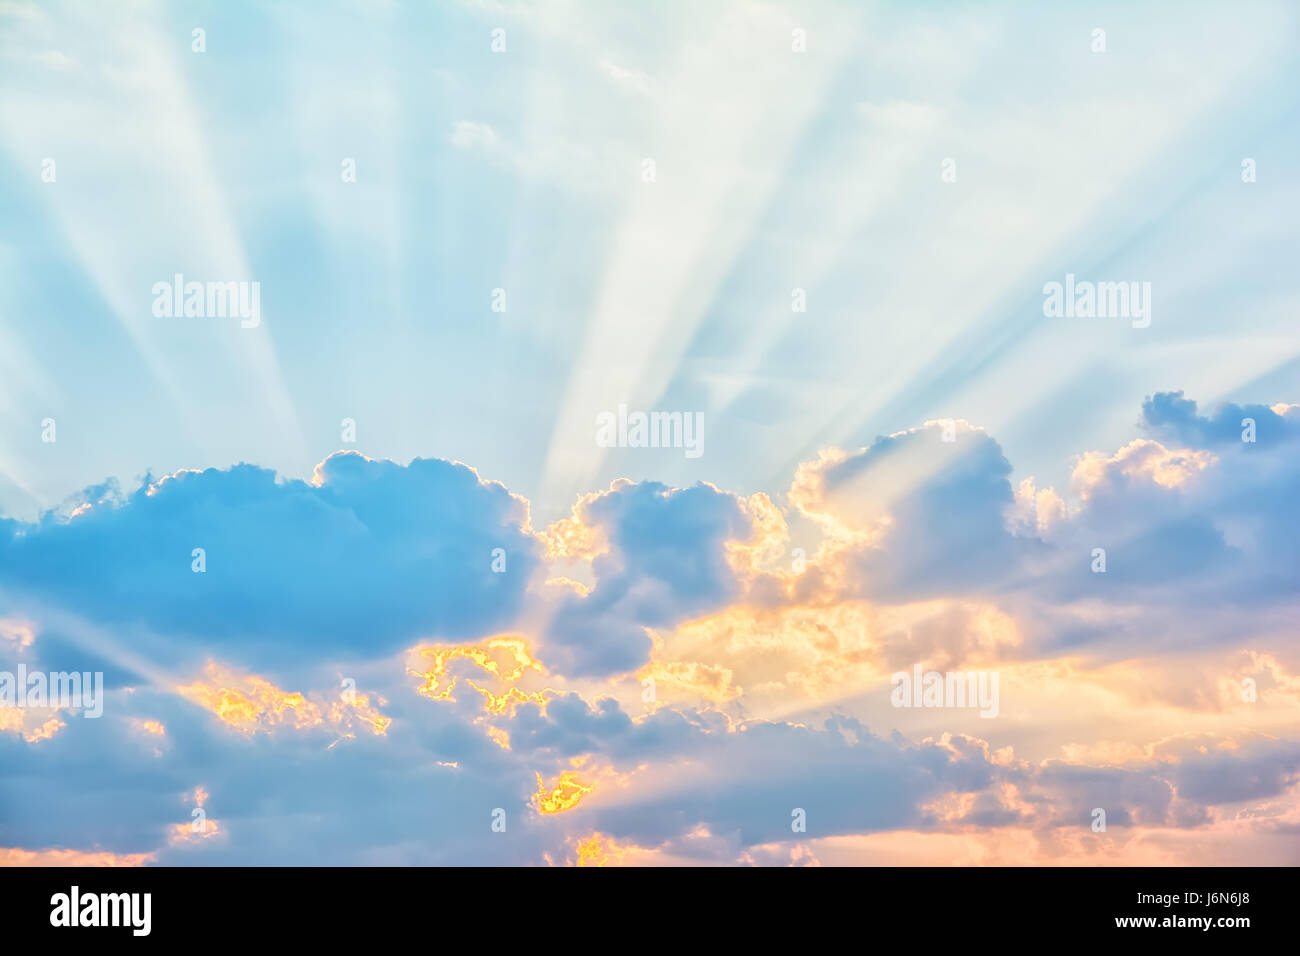 Sunrise sky with sun rays breaking through the clouds - Stock Image